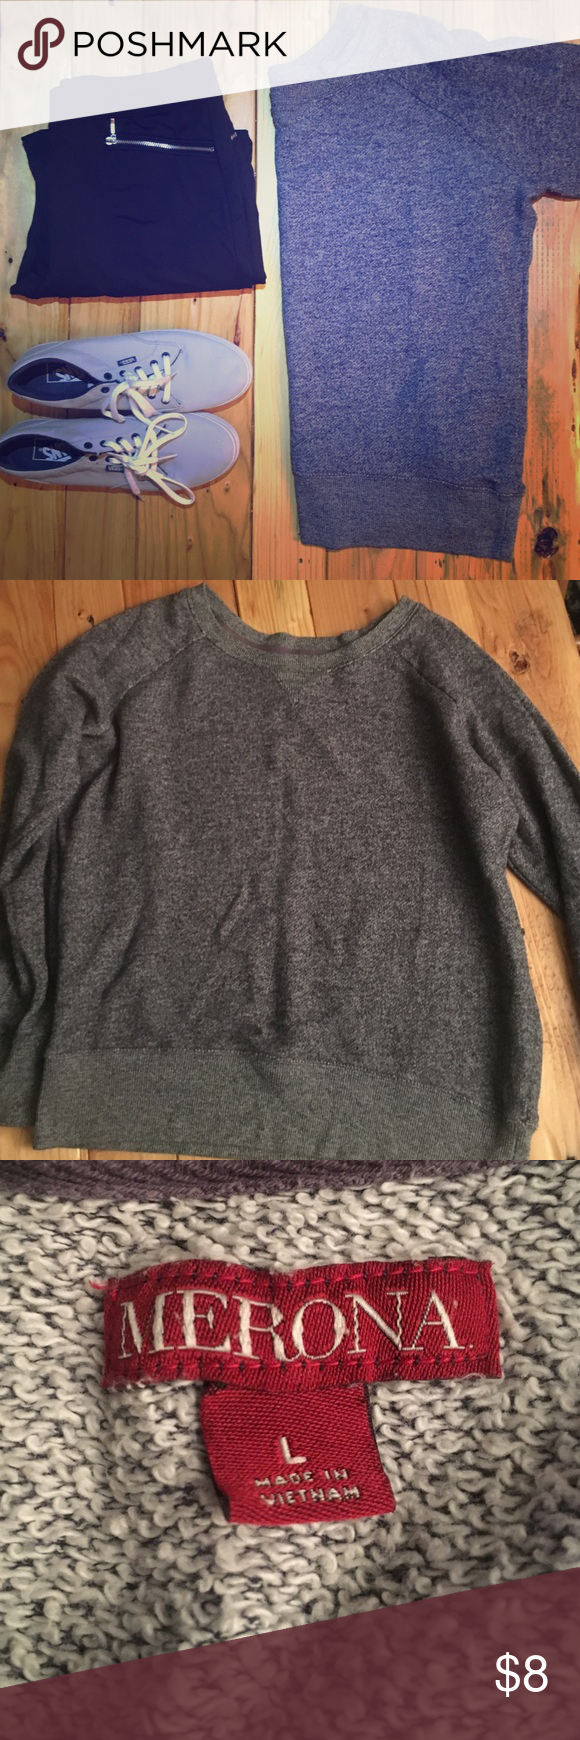 Merona pullover Size large, blue gray, Merona pullover. Fits true to size and can be worn as an oversized sweater by smaller sizes. Pair it with leggings & boots. 67% cotton 33% polyester.   📦better discounts with bundles📦 🎀be kind when making offers. Remember posh takes 20% commission on items priced $15 or higher and $2.95 for items priced under that 🎀  🚫PayPal 🚫trades  ❗️items $ 10 & under are firm unless bundled. Merona Sweaters Crew & Scoop Necks